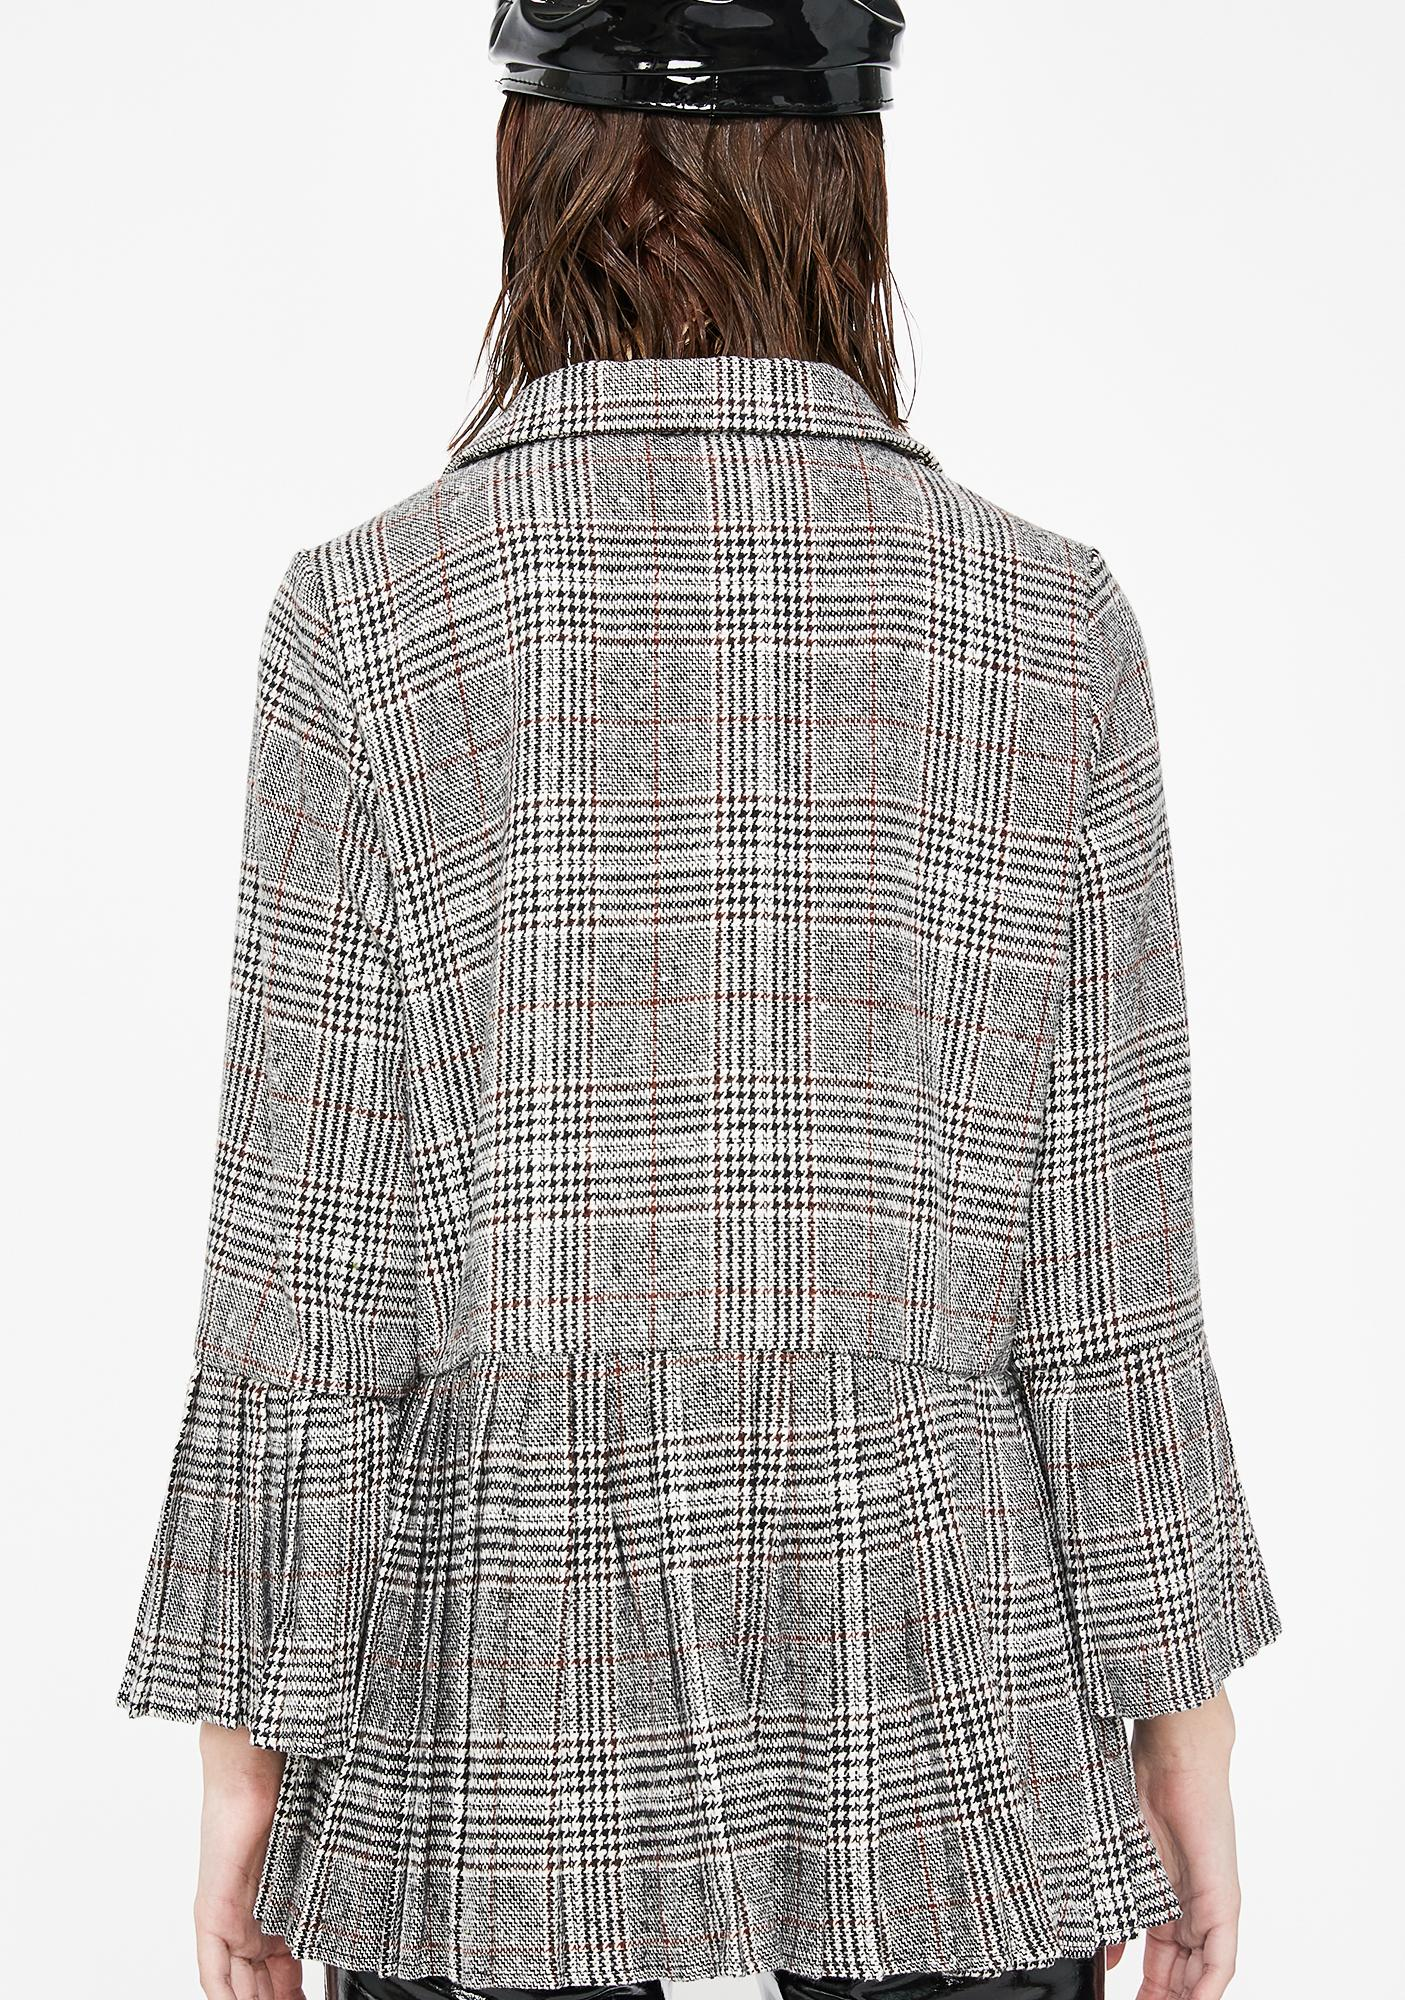 Higher Reading Plaid Blazer